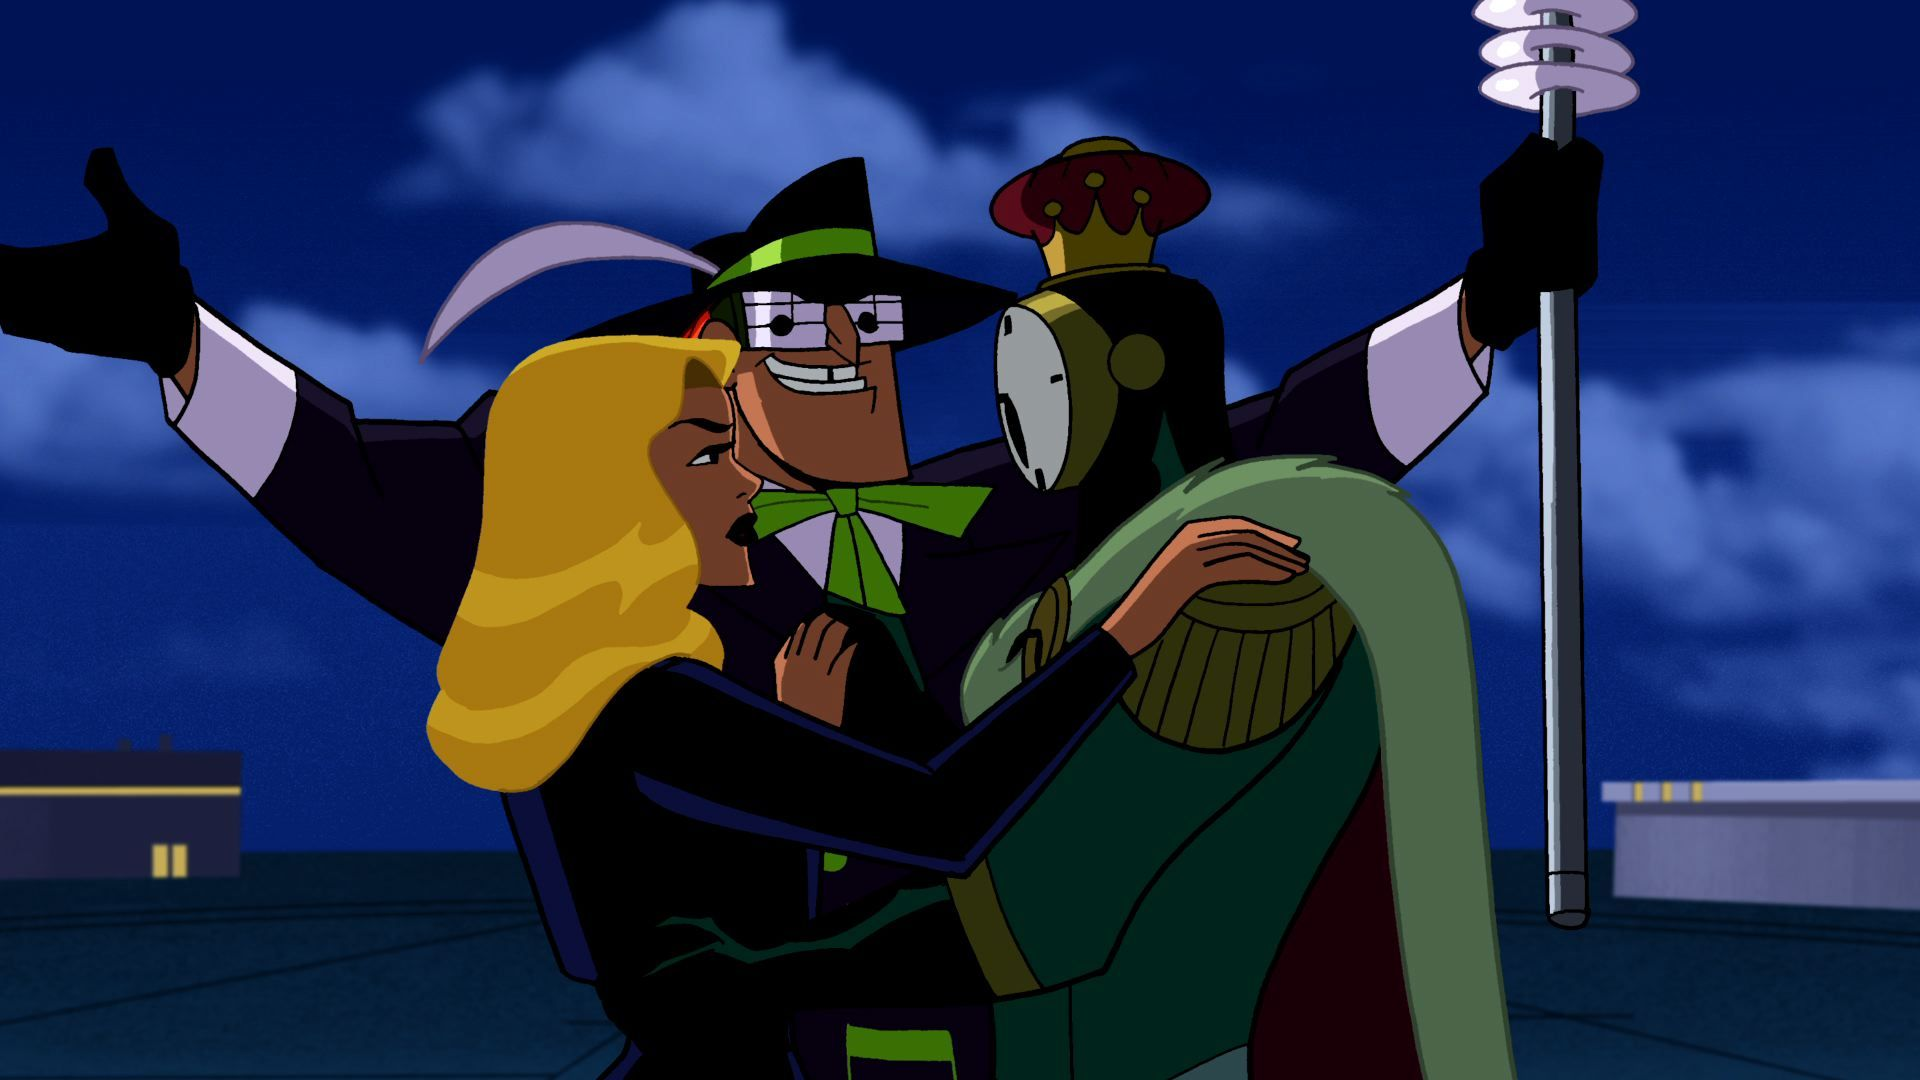 I M The Music Meister With Images Meister Brave And The Bold